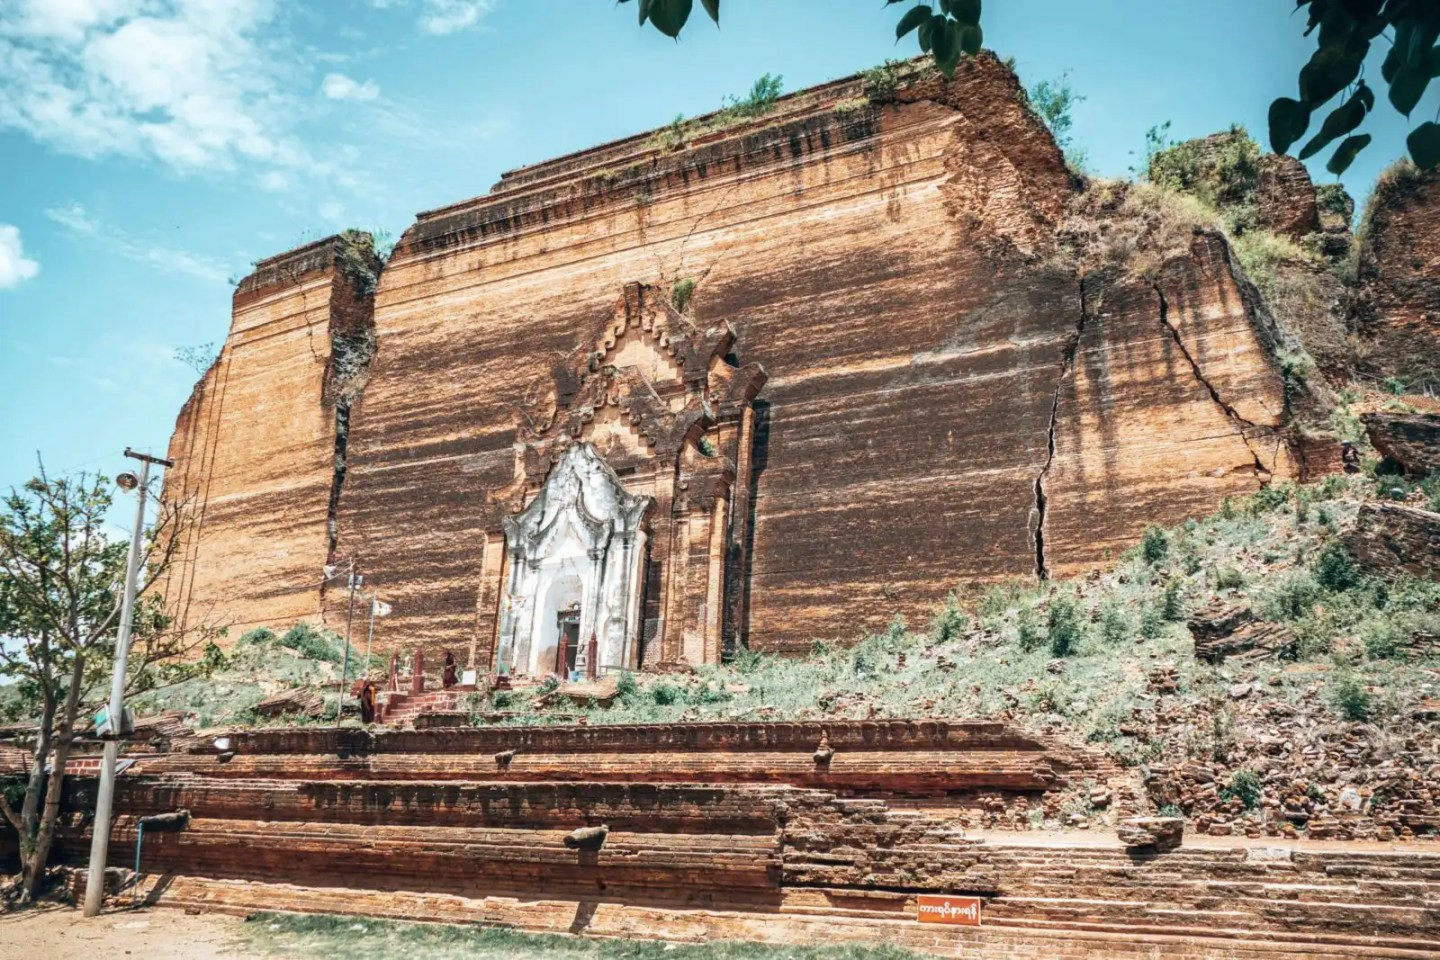 Picture of the unfinished Mingun Pagoda in Mandalay Myanmar